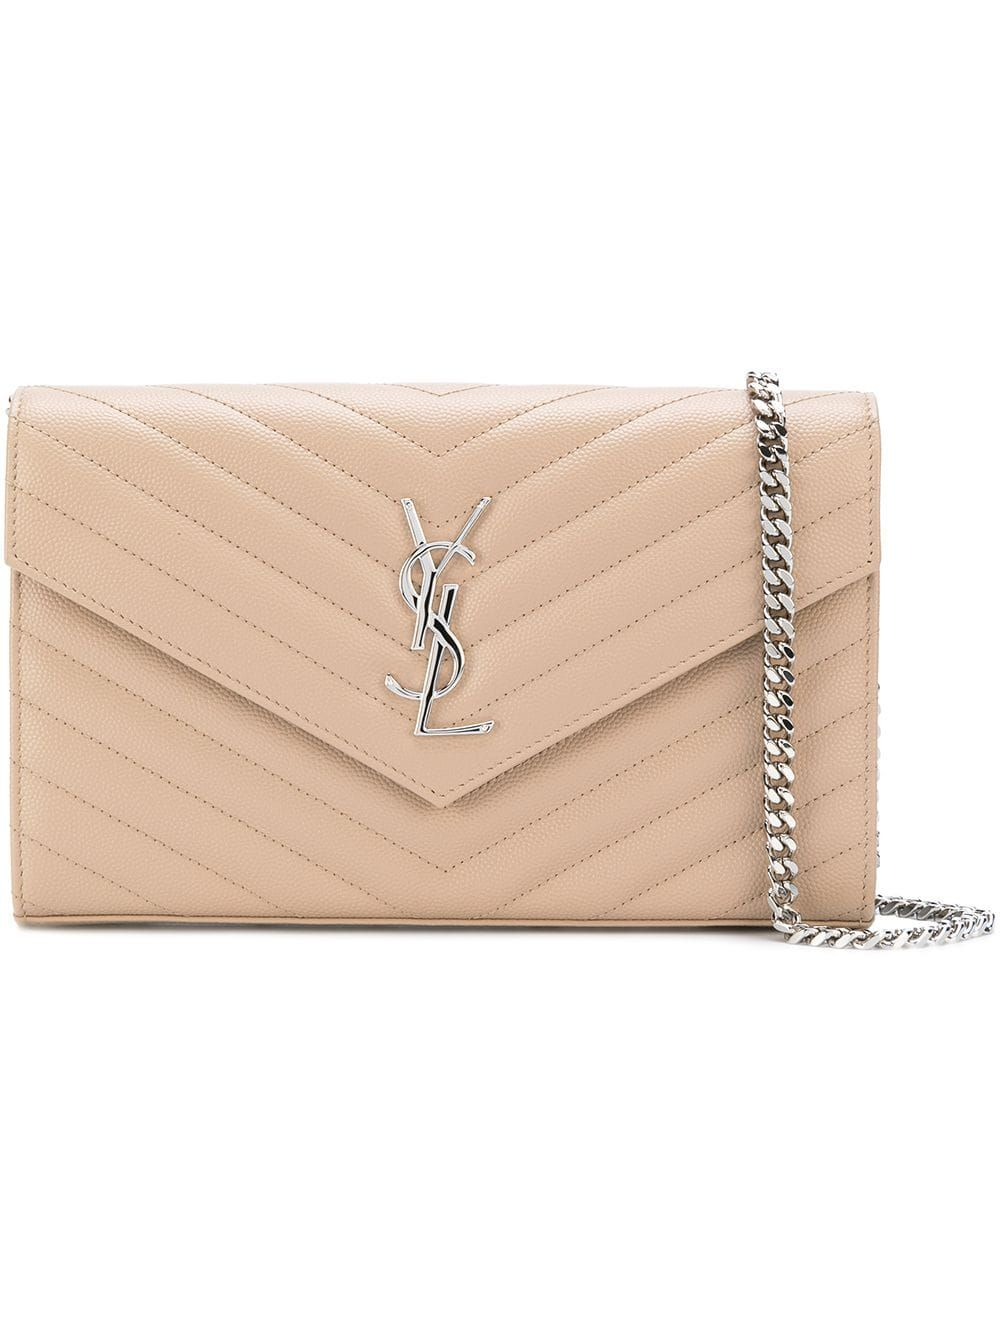 a24053f87e5 Saint Laurent Monogram chain wallet - Neutrals in 2019 | Products ...